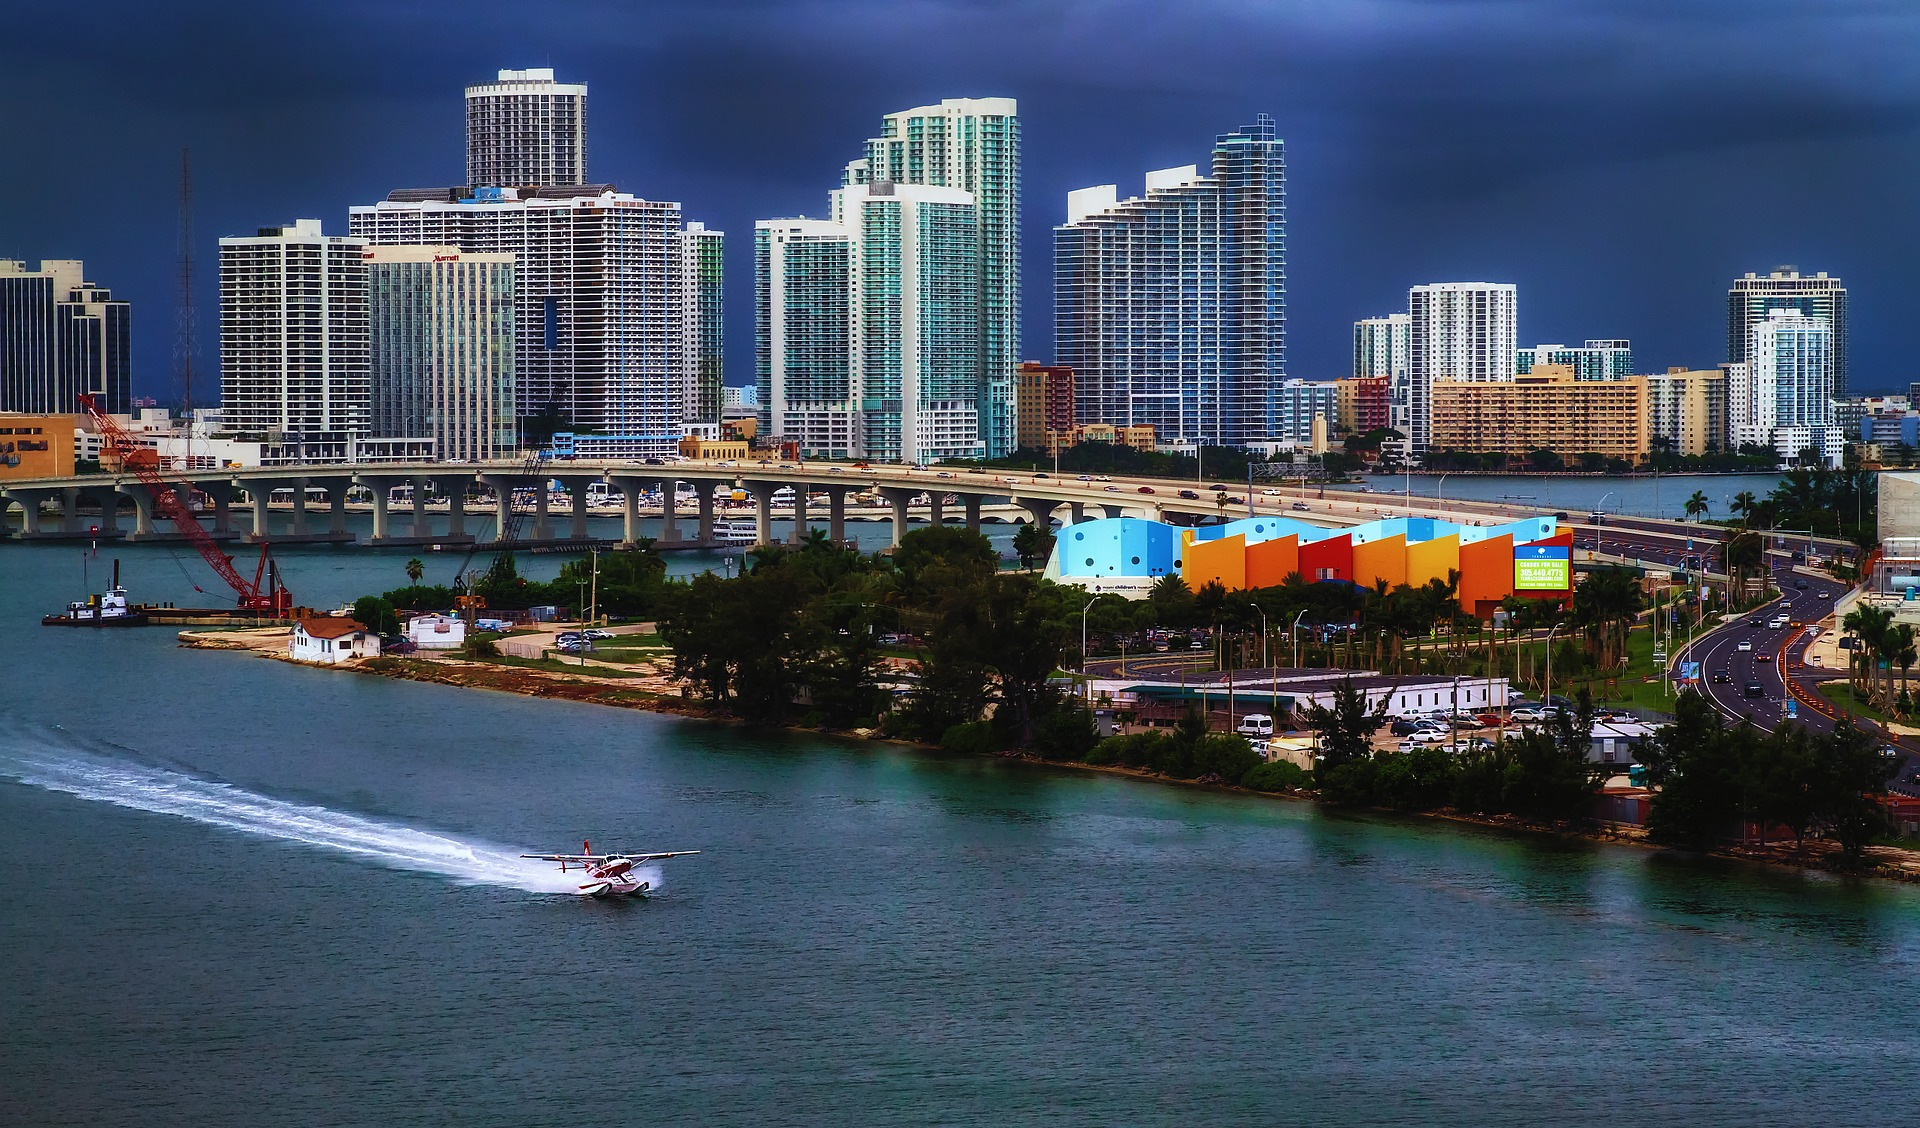 Port in Miami, Florida